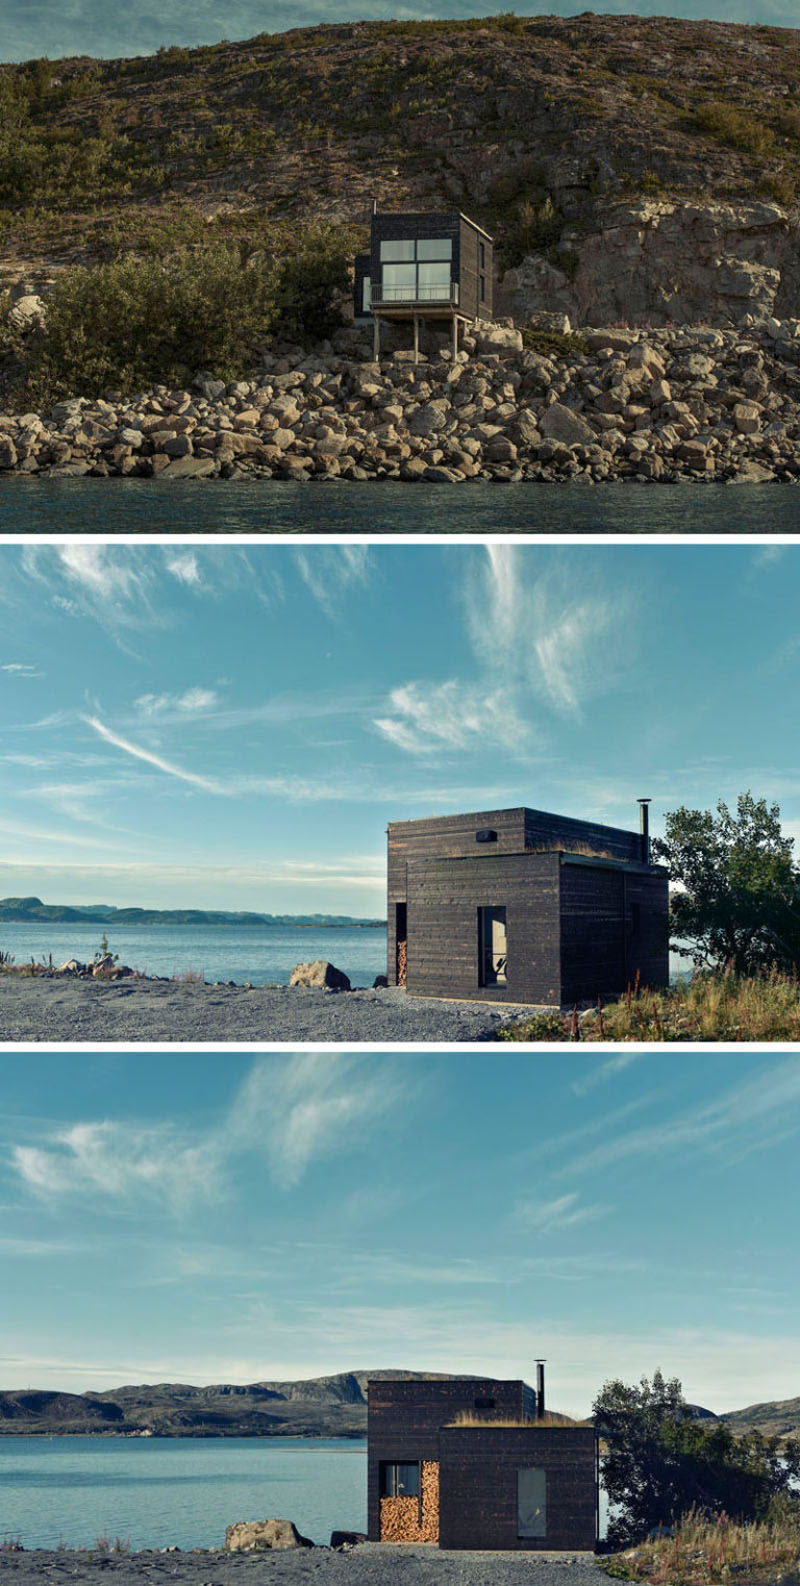 11 Small Modern House Designs // Tucked into the rocks of the Norwegian coast, this small dark wood home is just big enough to create a cozy space for one or two people. #SmallHouse #ModernHouse #ModernArchitecture #SmallHome